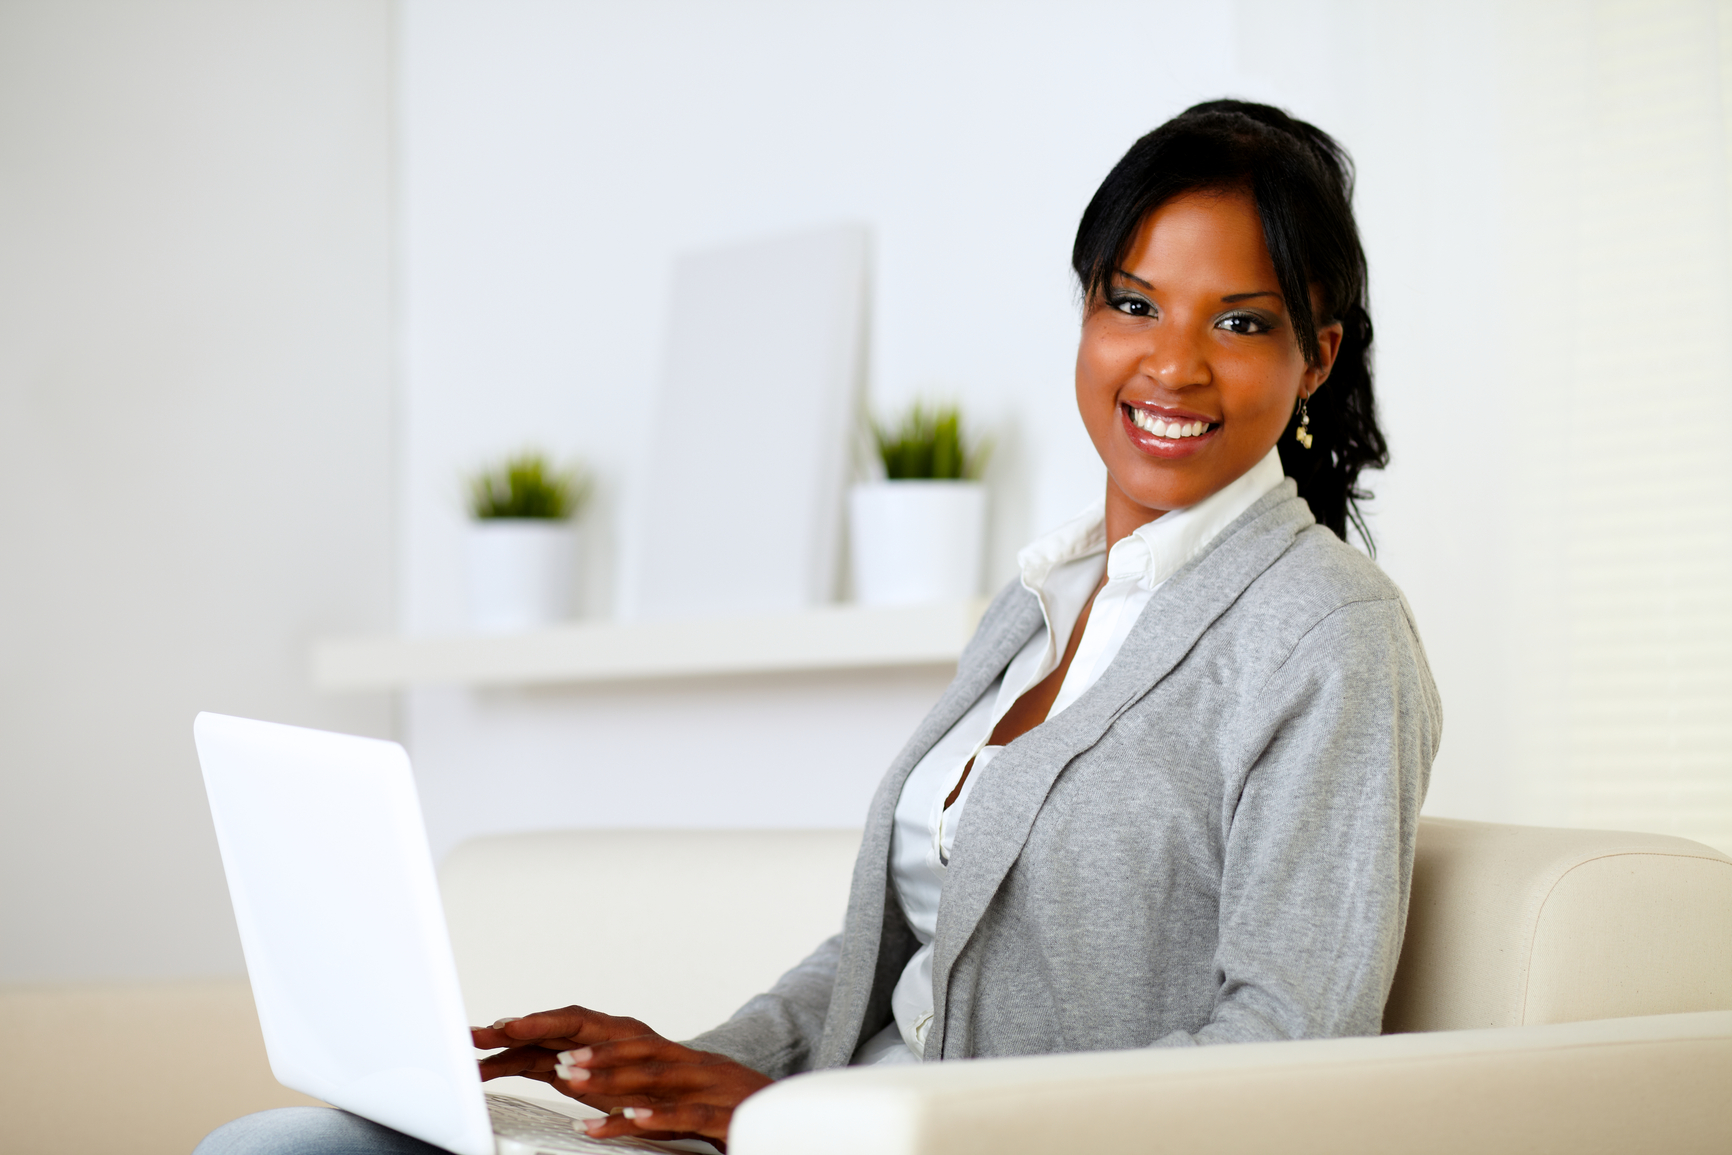 Happy woman browse the Internet on laptop